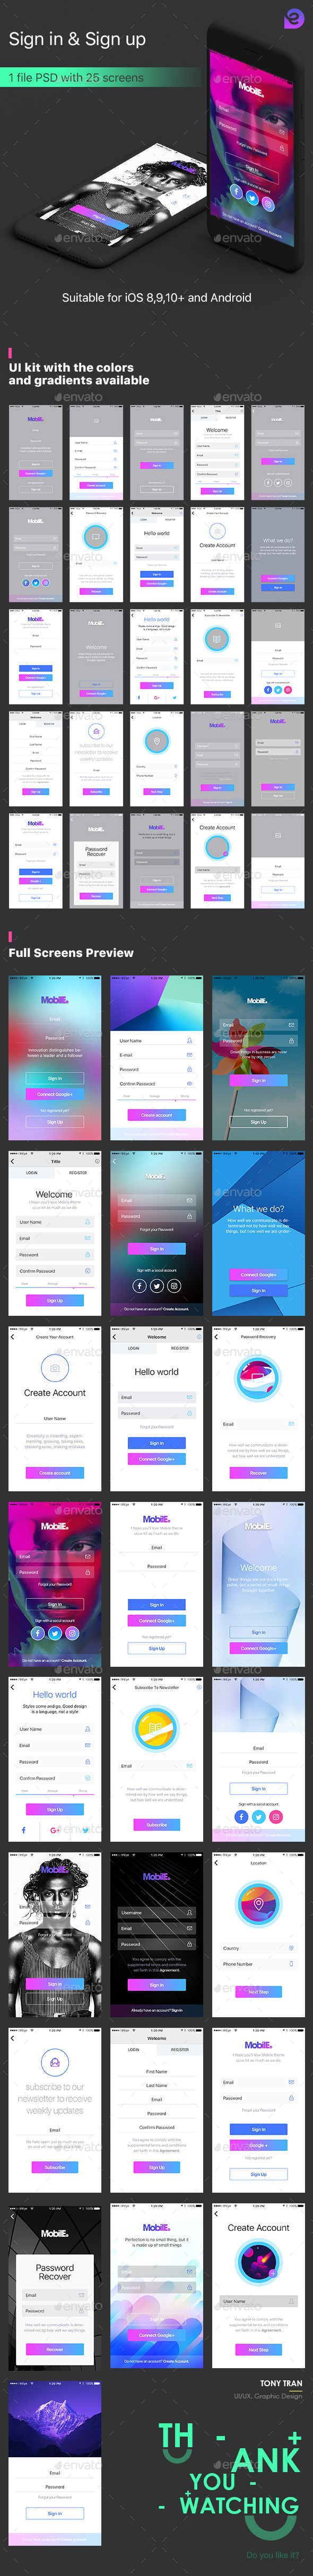 Travel Social App UI Kit (User Interfaces)